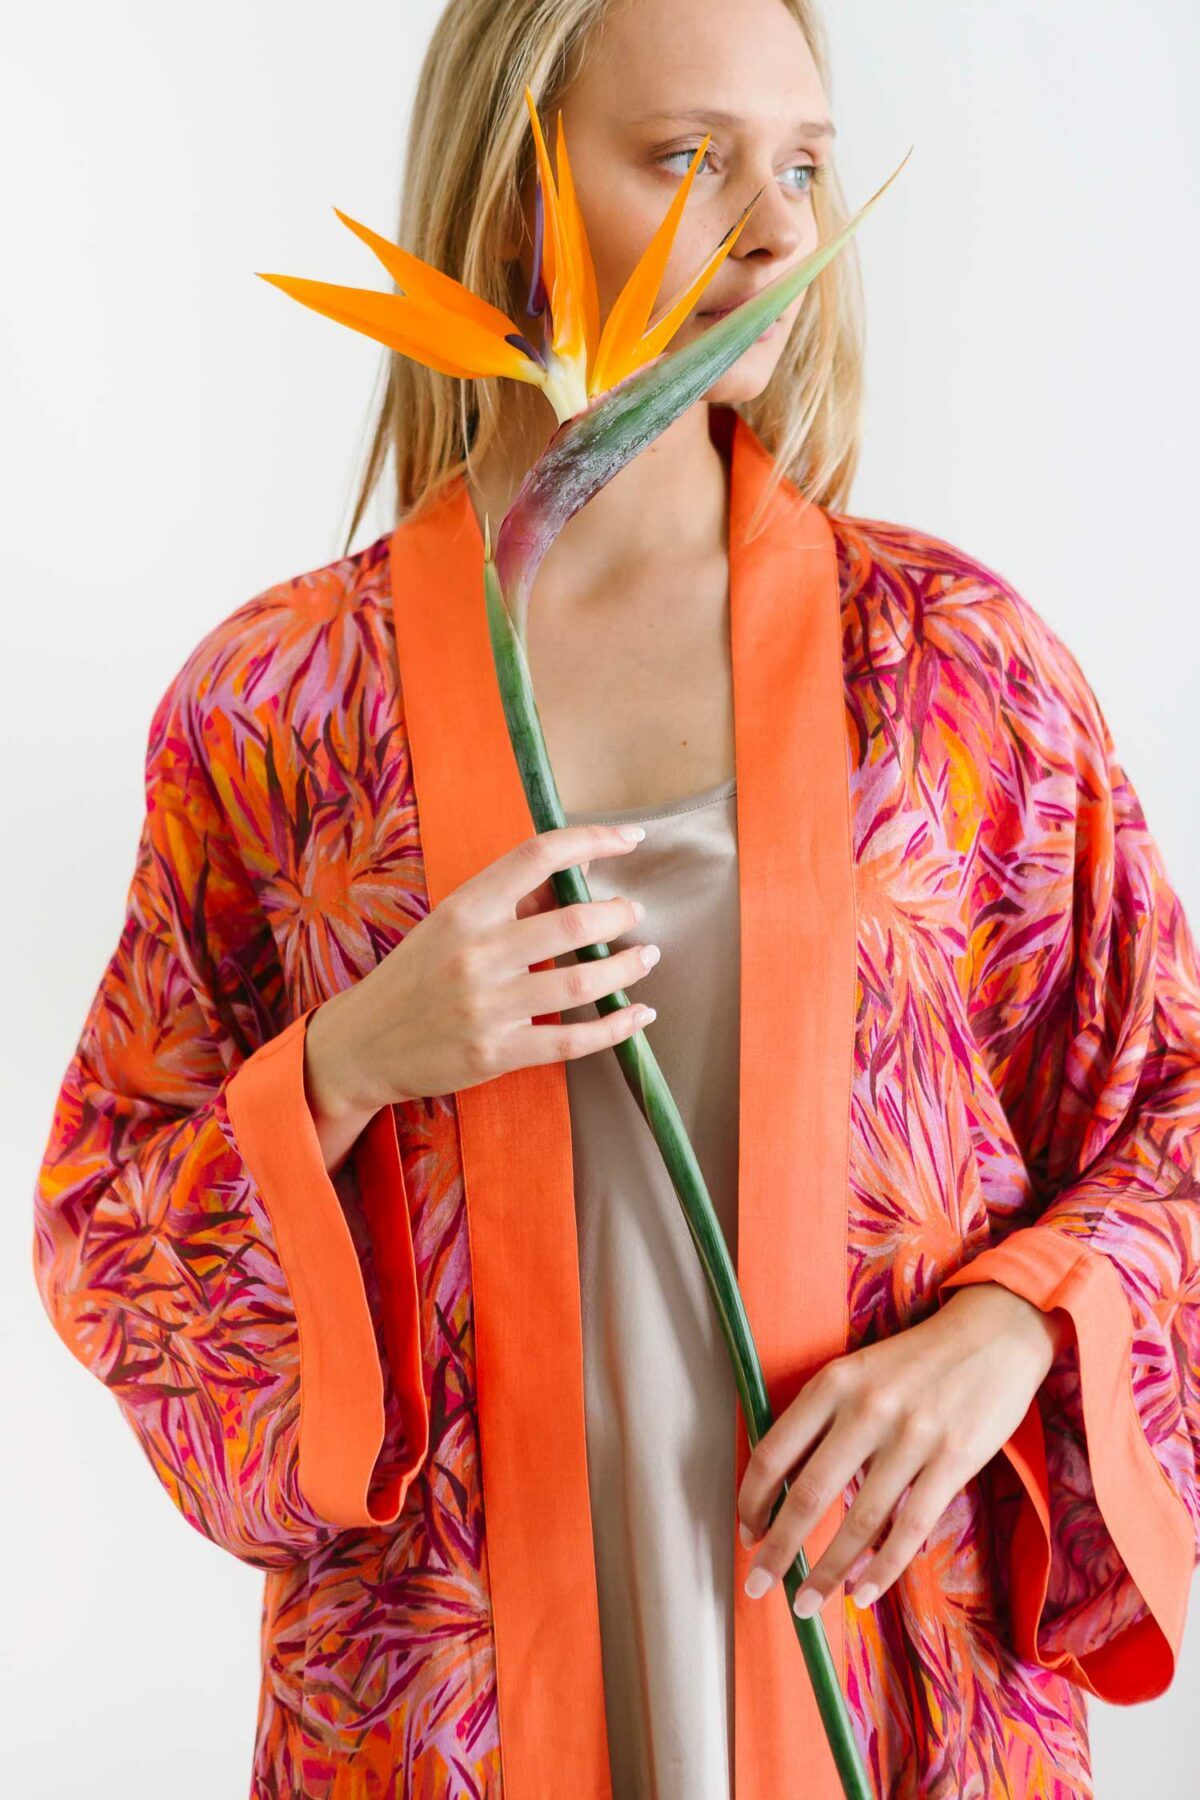 woman with an orange kimono